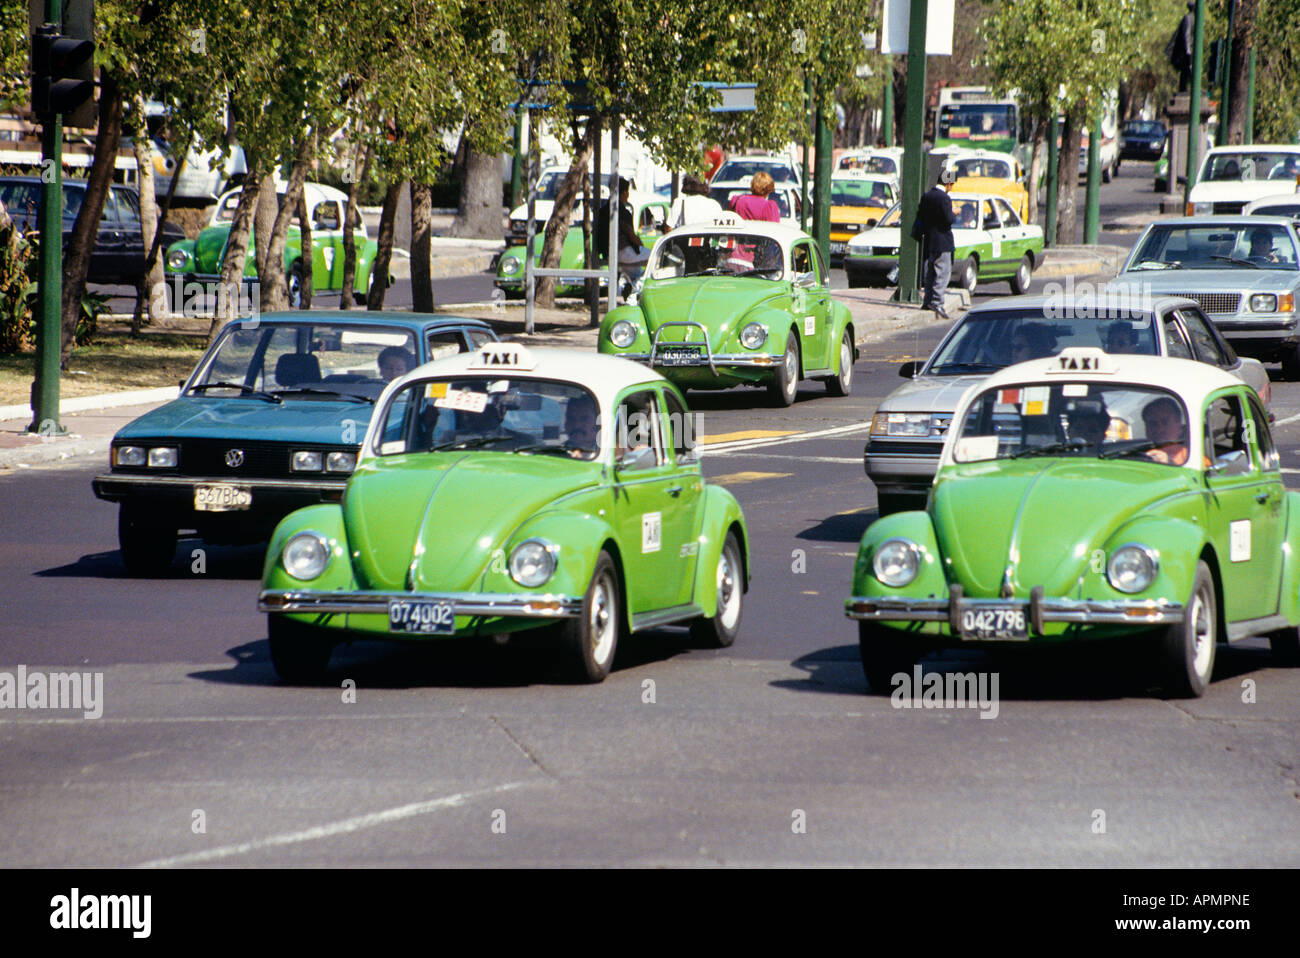 A number of green VW beetles the city s ubiquitous taxis in the